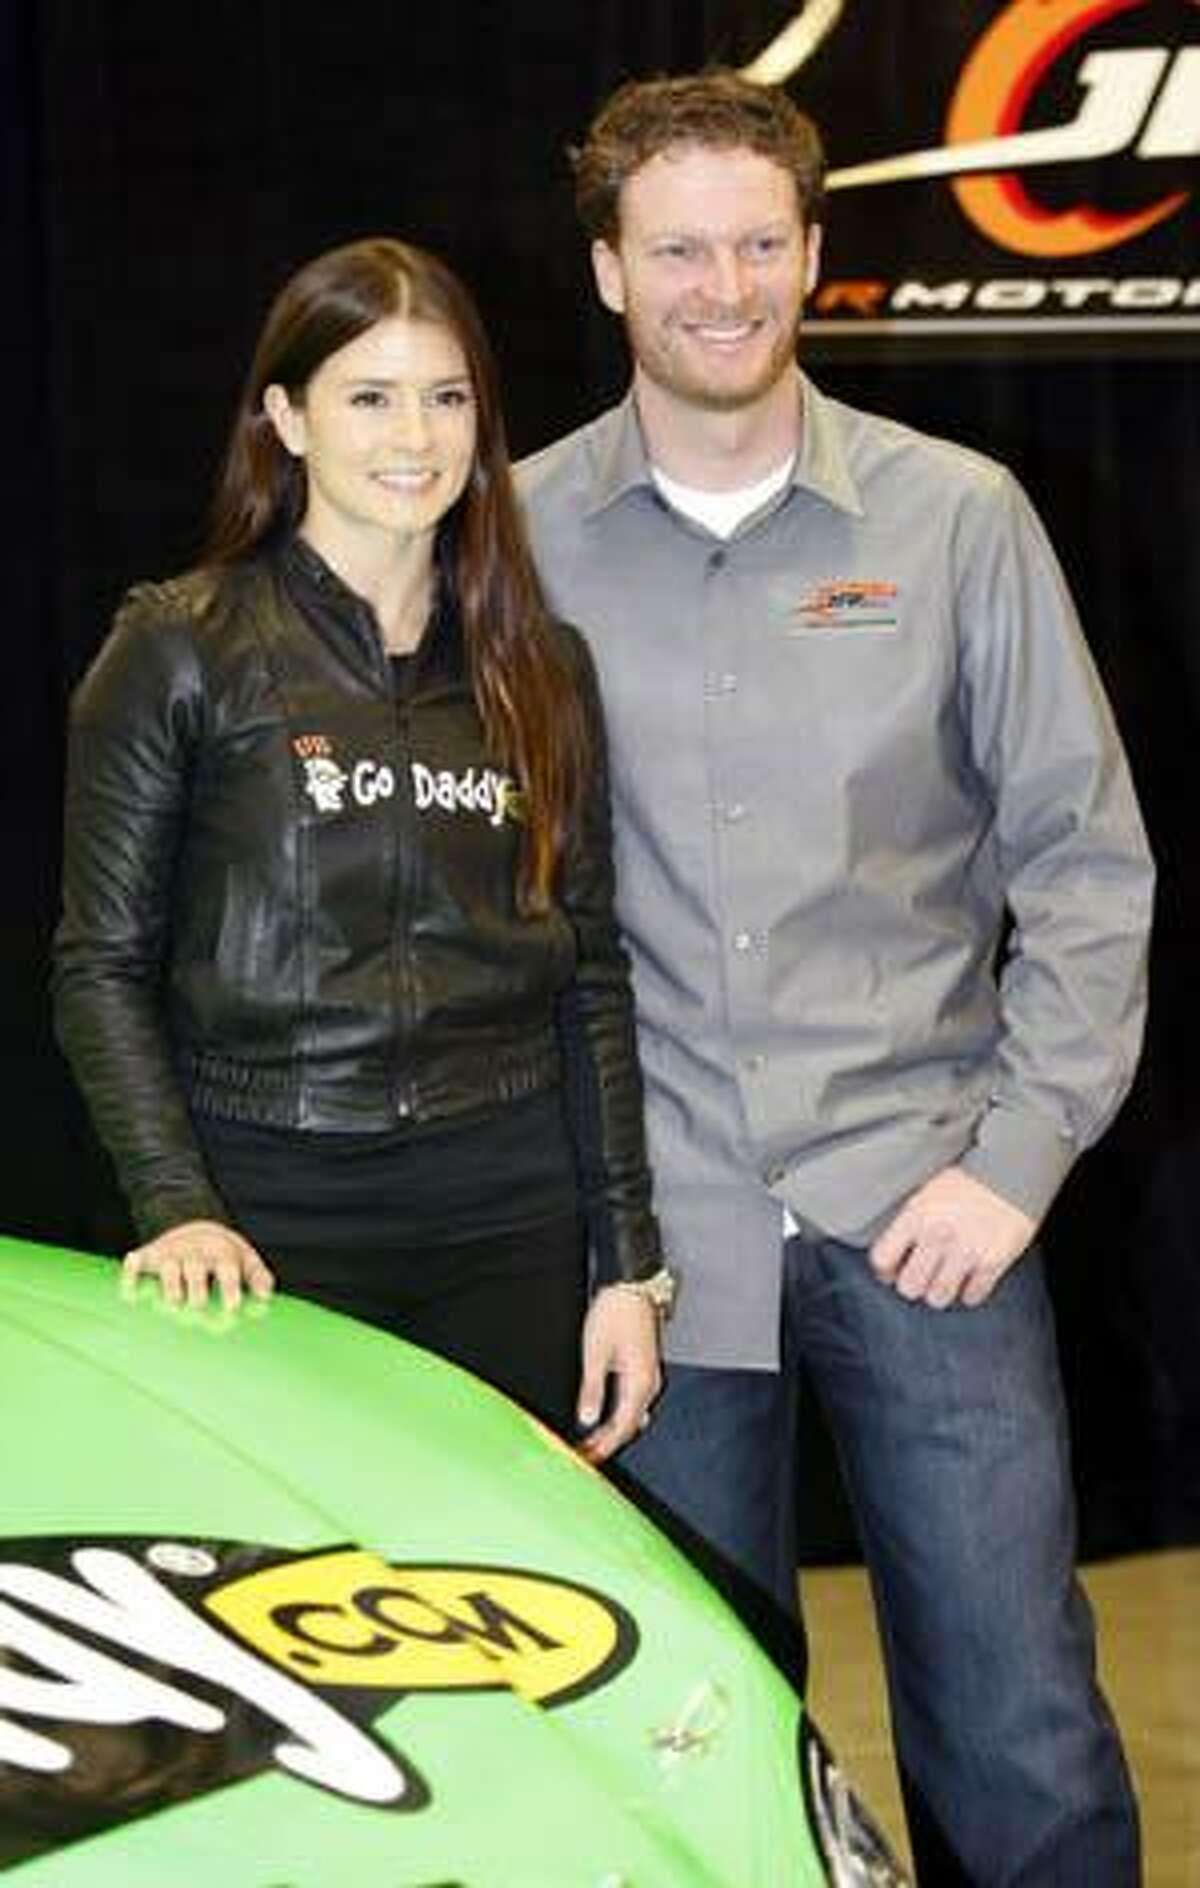 AP Danica Patrick, left, poses with team co-owner Dale Earnhardt during a news conference to discuss Patrick's plans to race for JR Motorsports, in Mooresville, N.C. on Thursday.